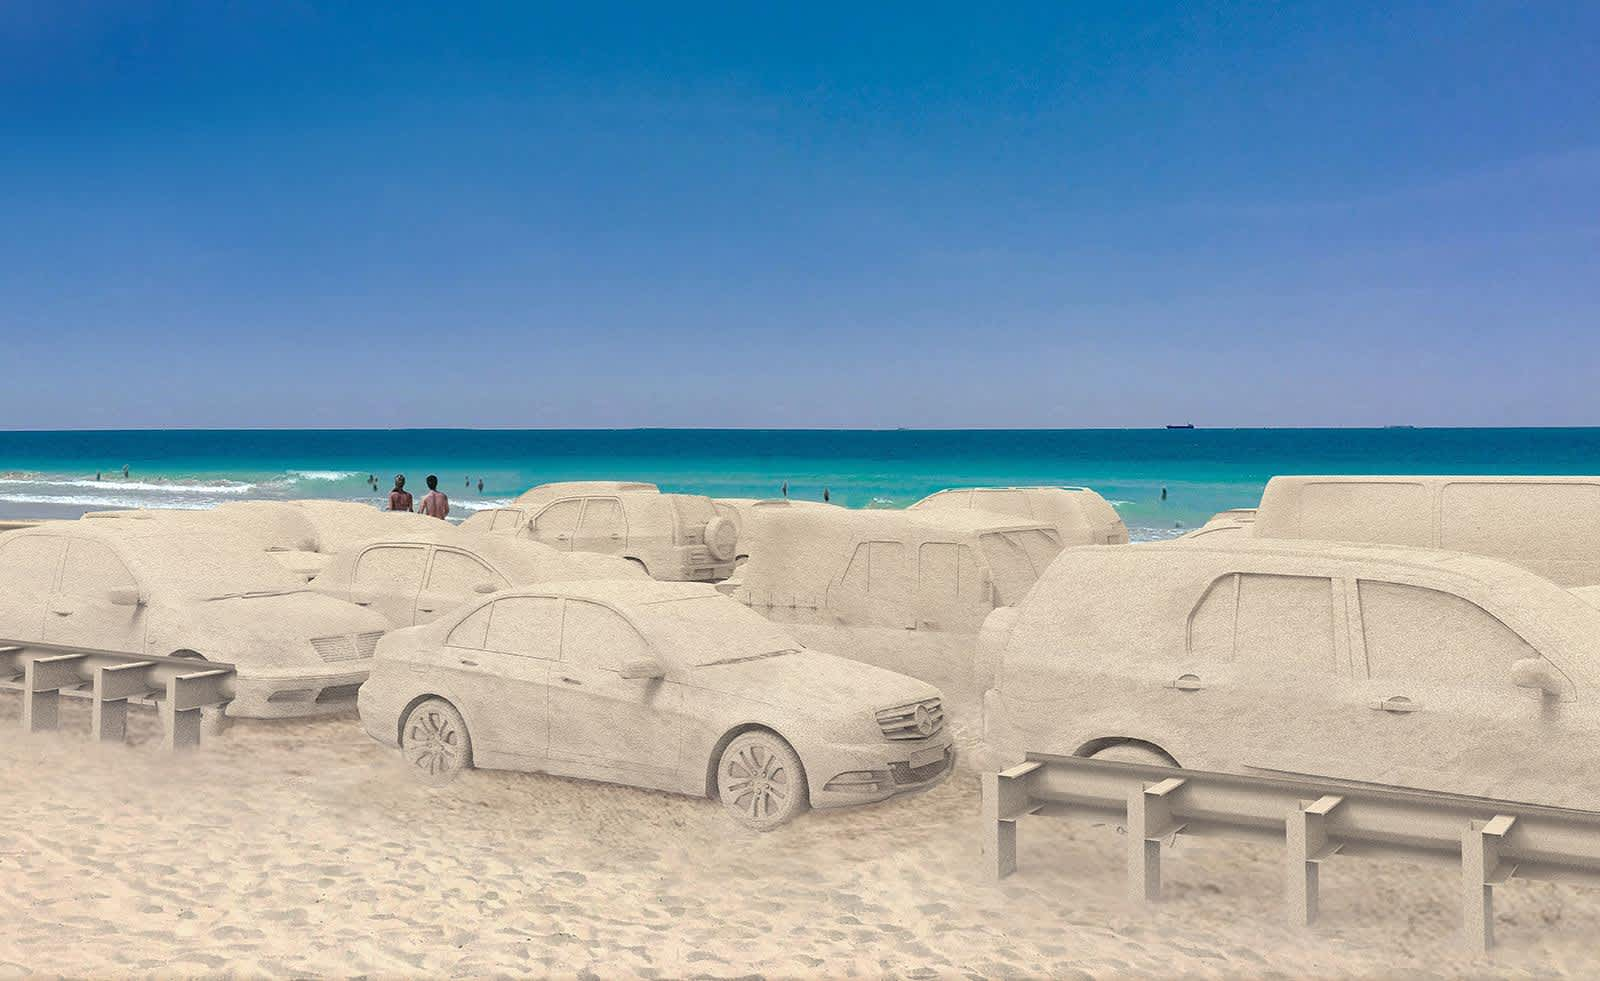 Leandro Erlich creates sand-covered traffic jam on Miami beach